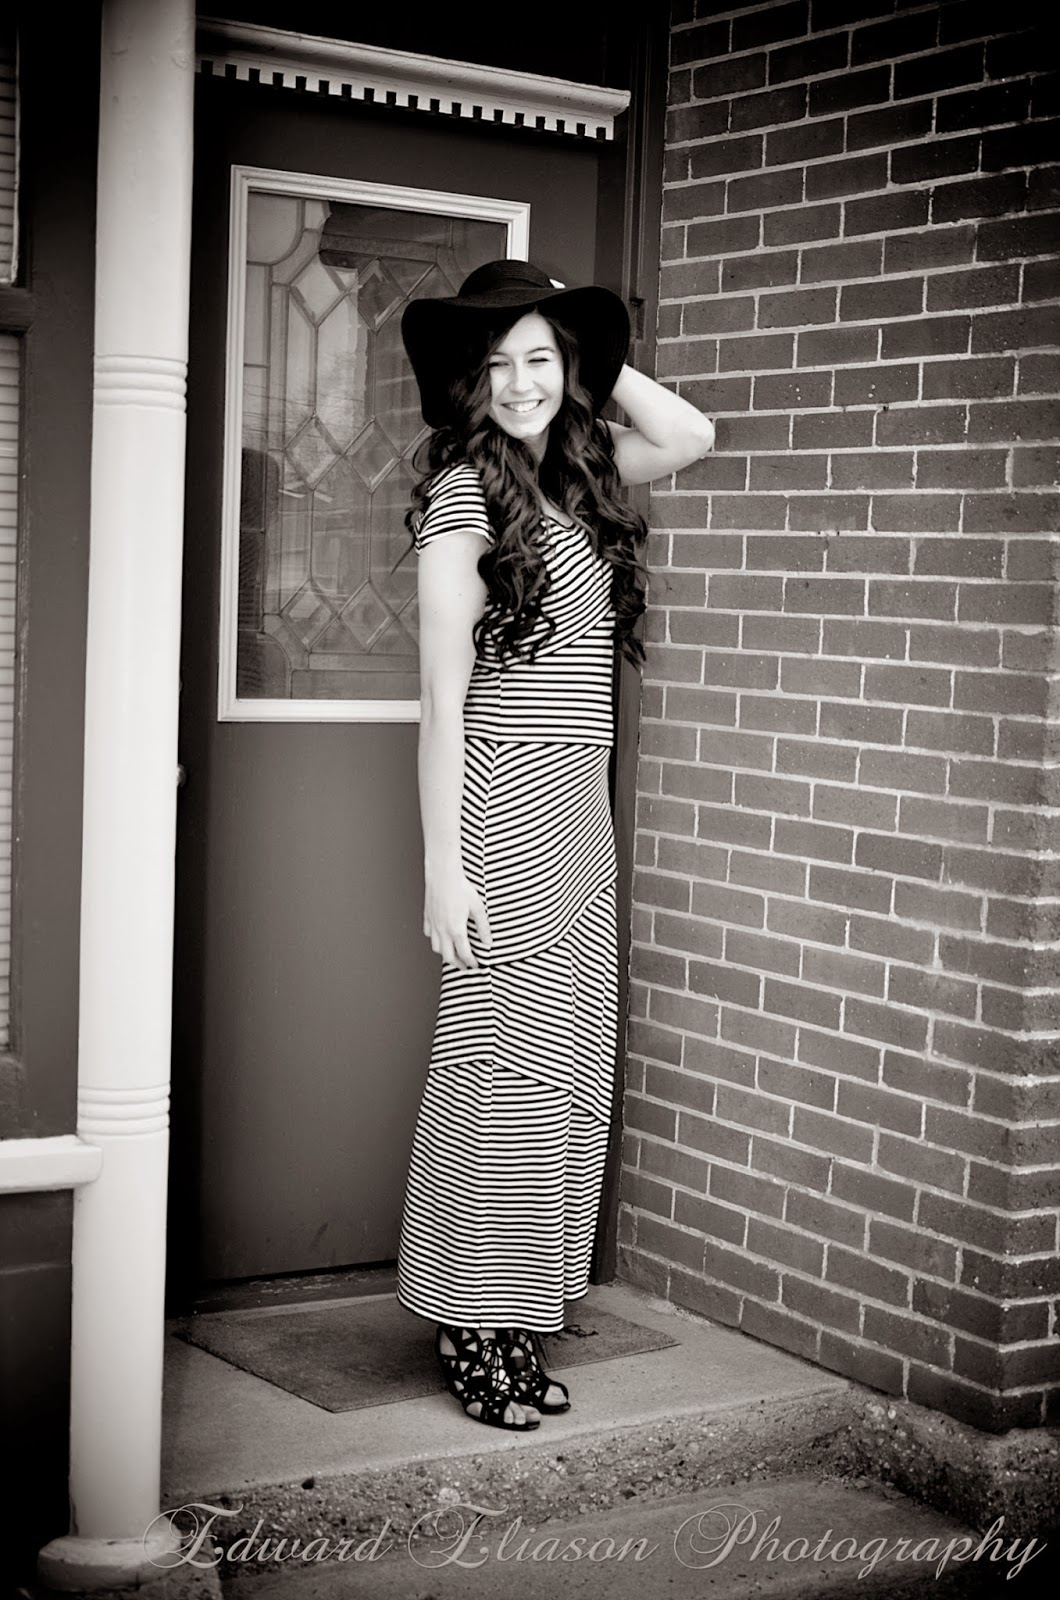 striped maxi dress, maxi dress, striped dress, old sandy city, sandy city, floppy hat, hats, wedges, old city photos,